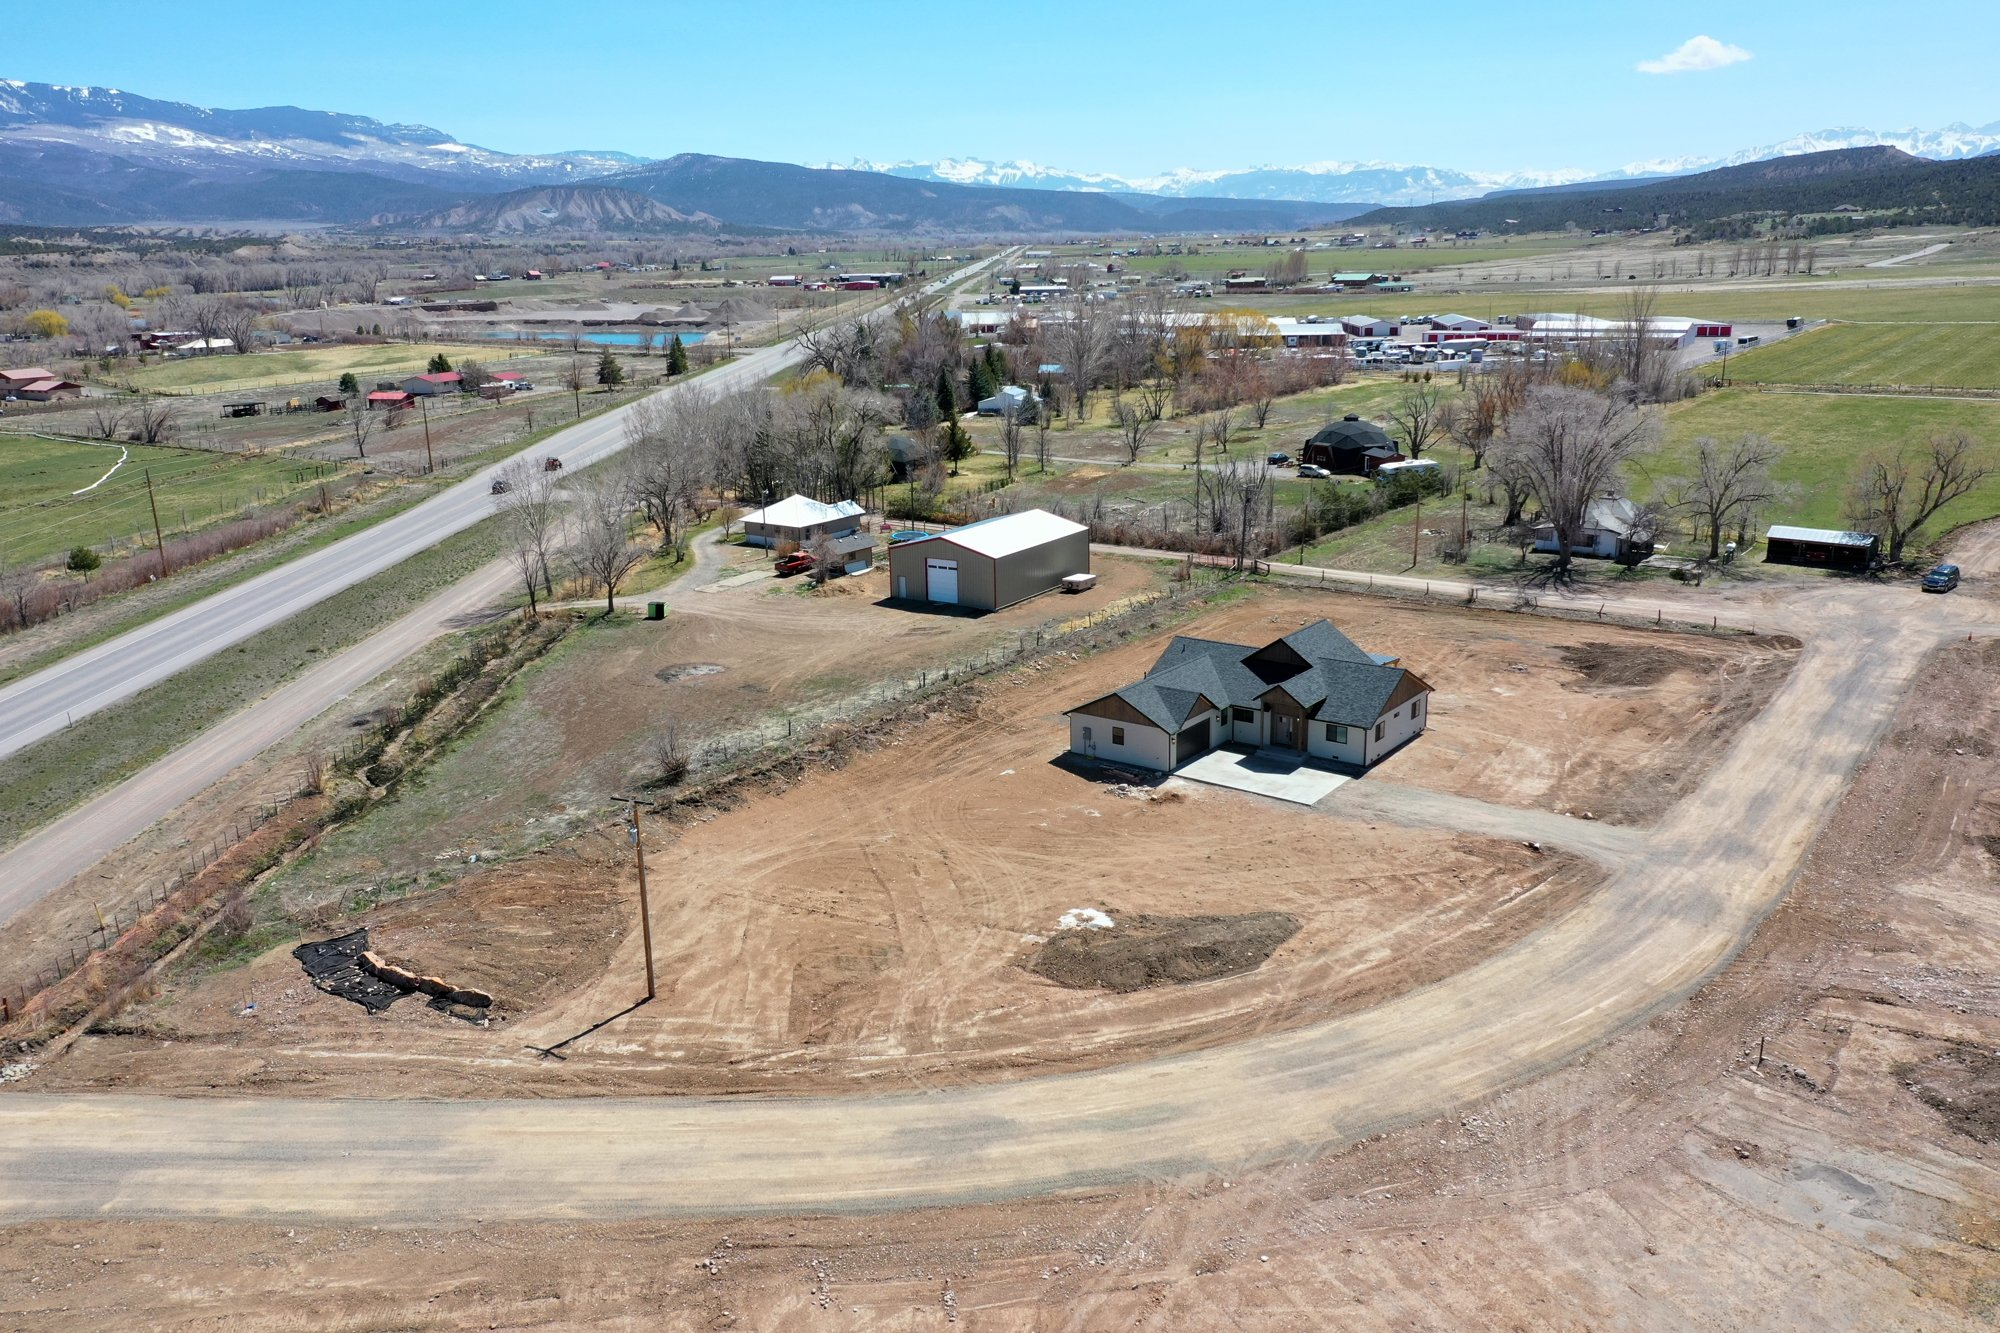 Front Aerial View South Facing - TBD Highway 550 Montrose, CO 81403 - Atha Team New Construction Real Estate